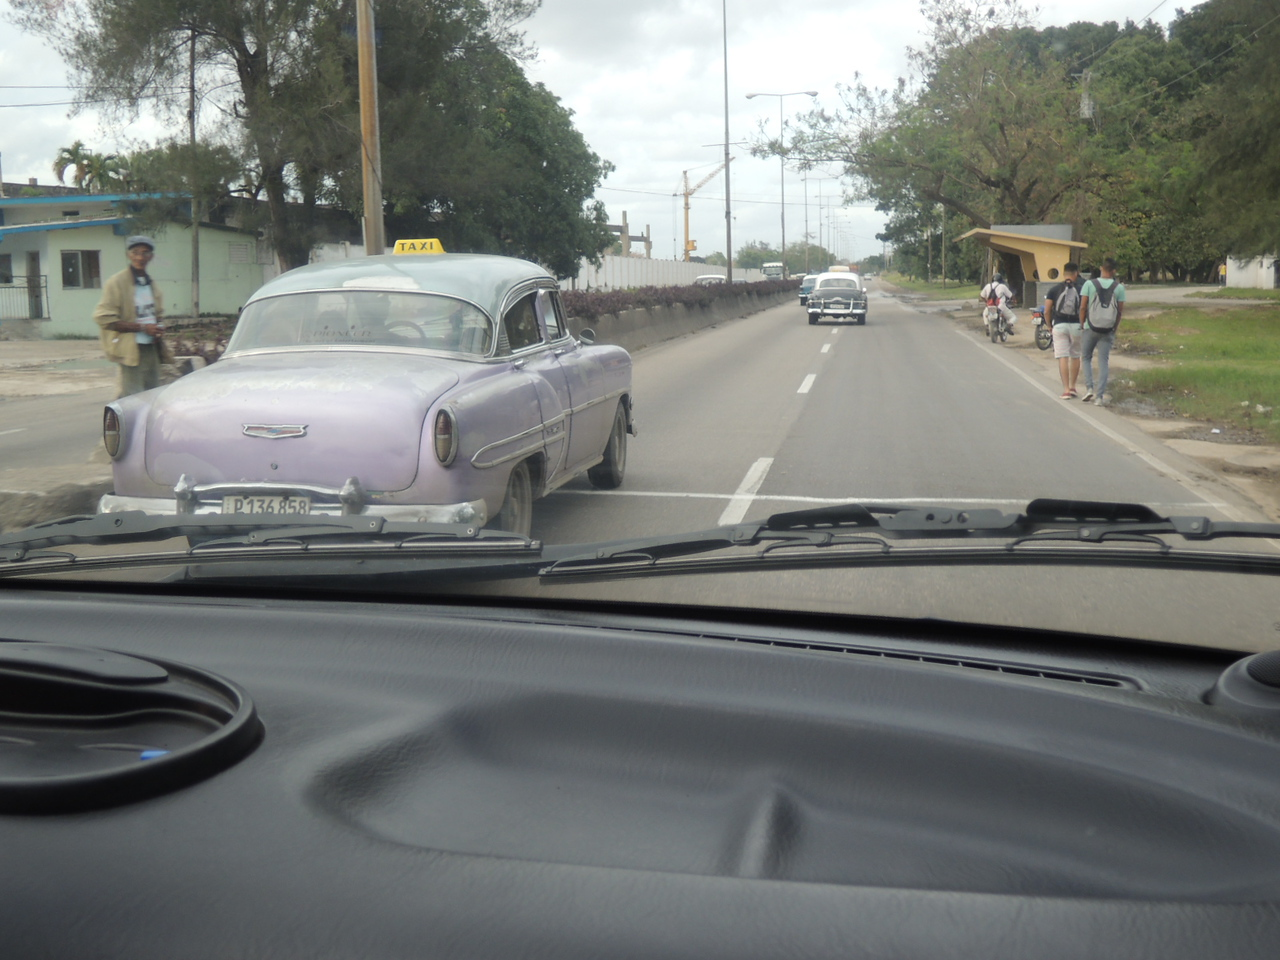 A 53 Chevy following an early 50's Chevy or Pontiac in the distance as we head in from the airport.  We were riding in a fairly new Hyundai mini-van that had a diesel engine and a manual transmission.